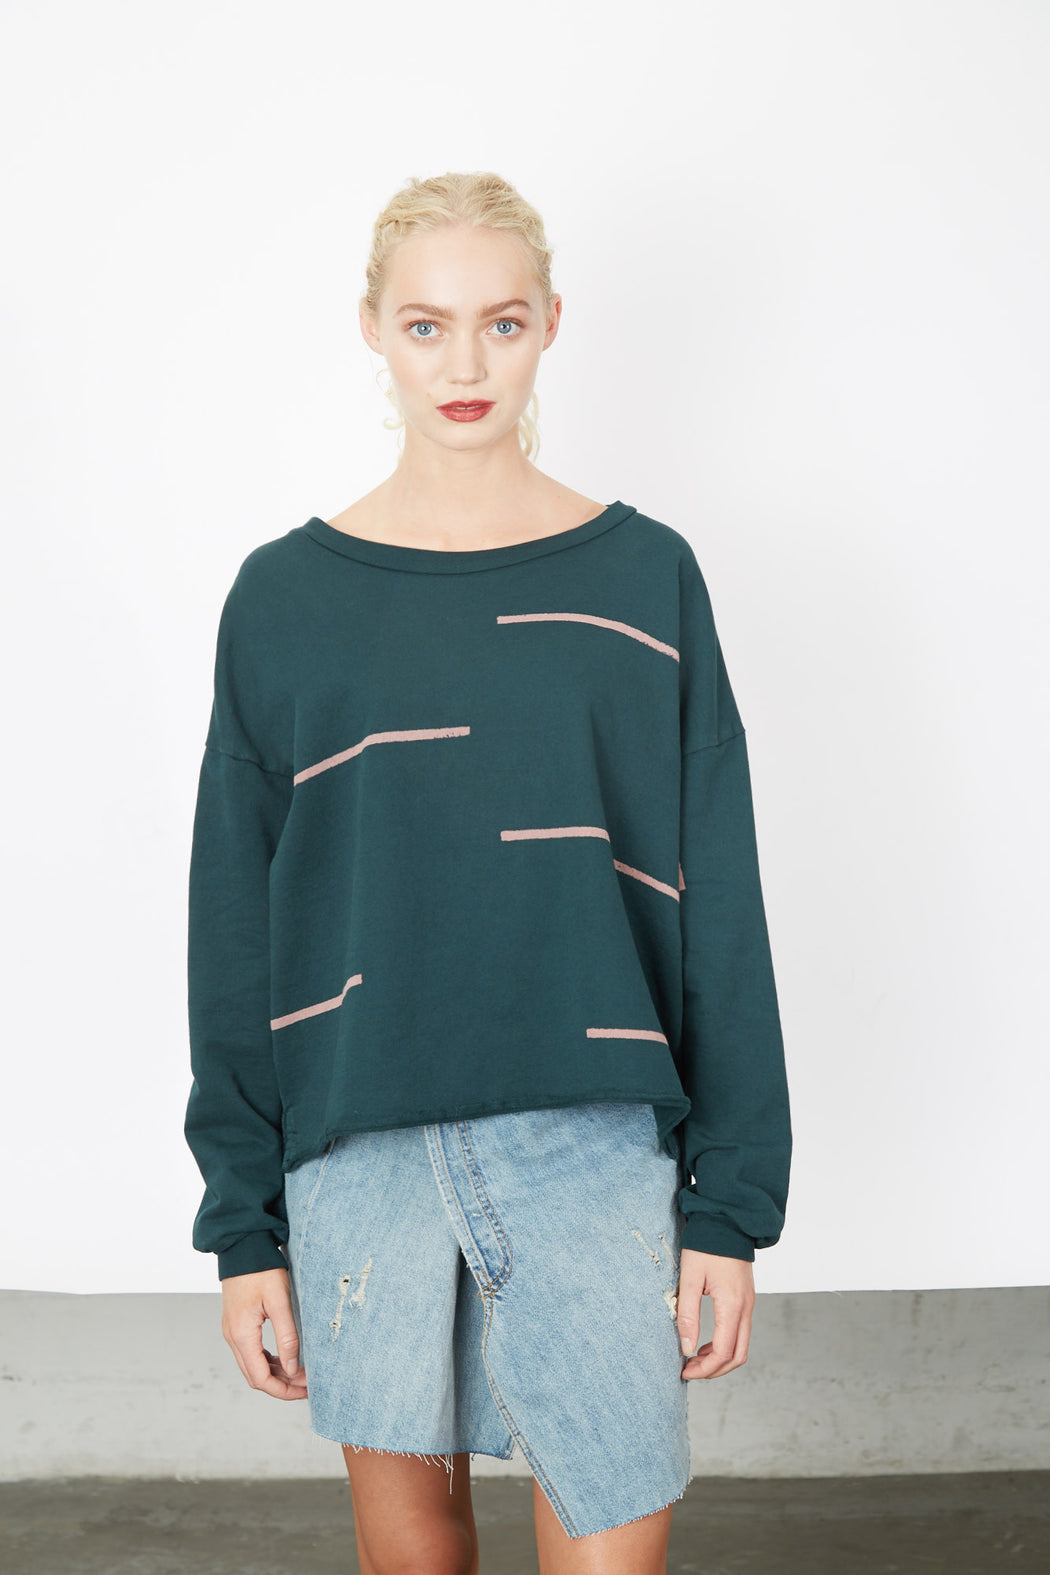 BOXY SWEATSHIRT Palm Stacatto Stripes